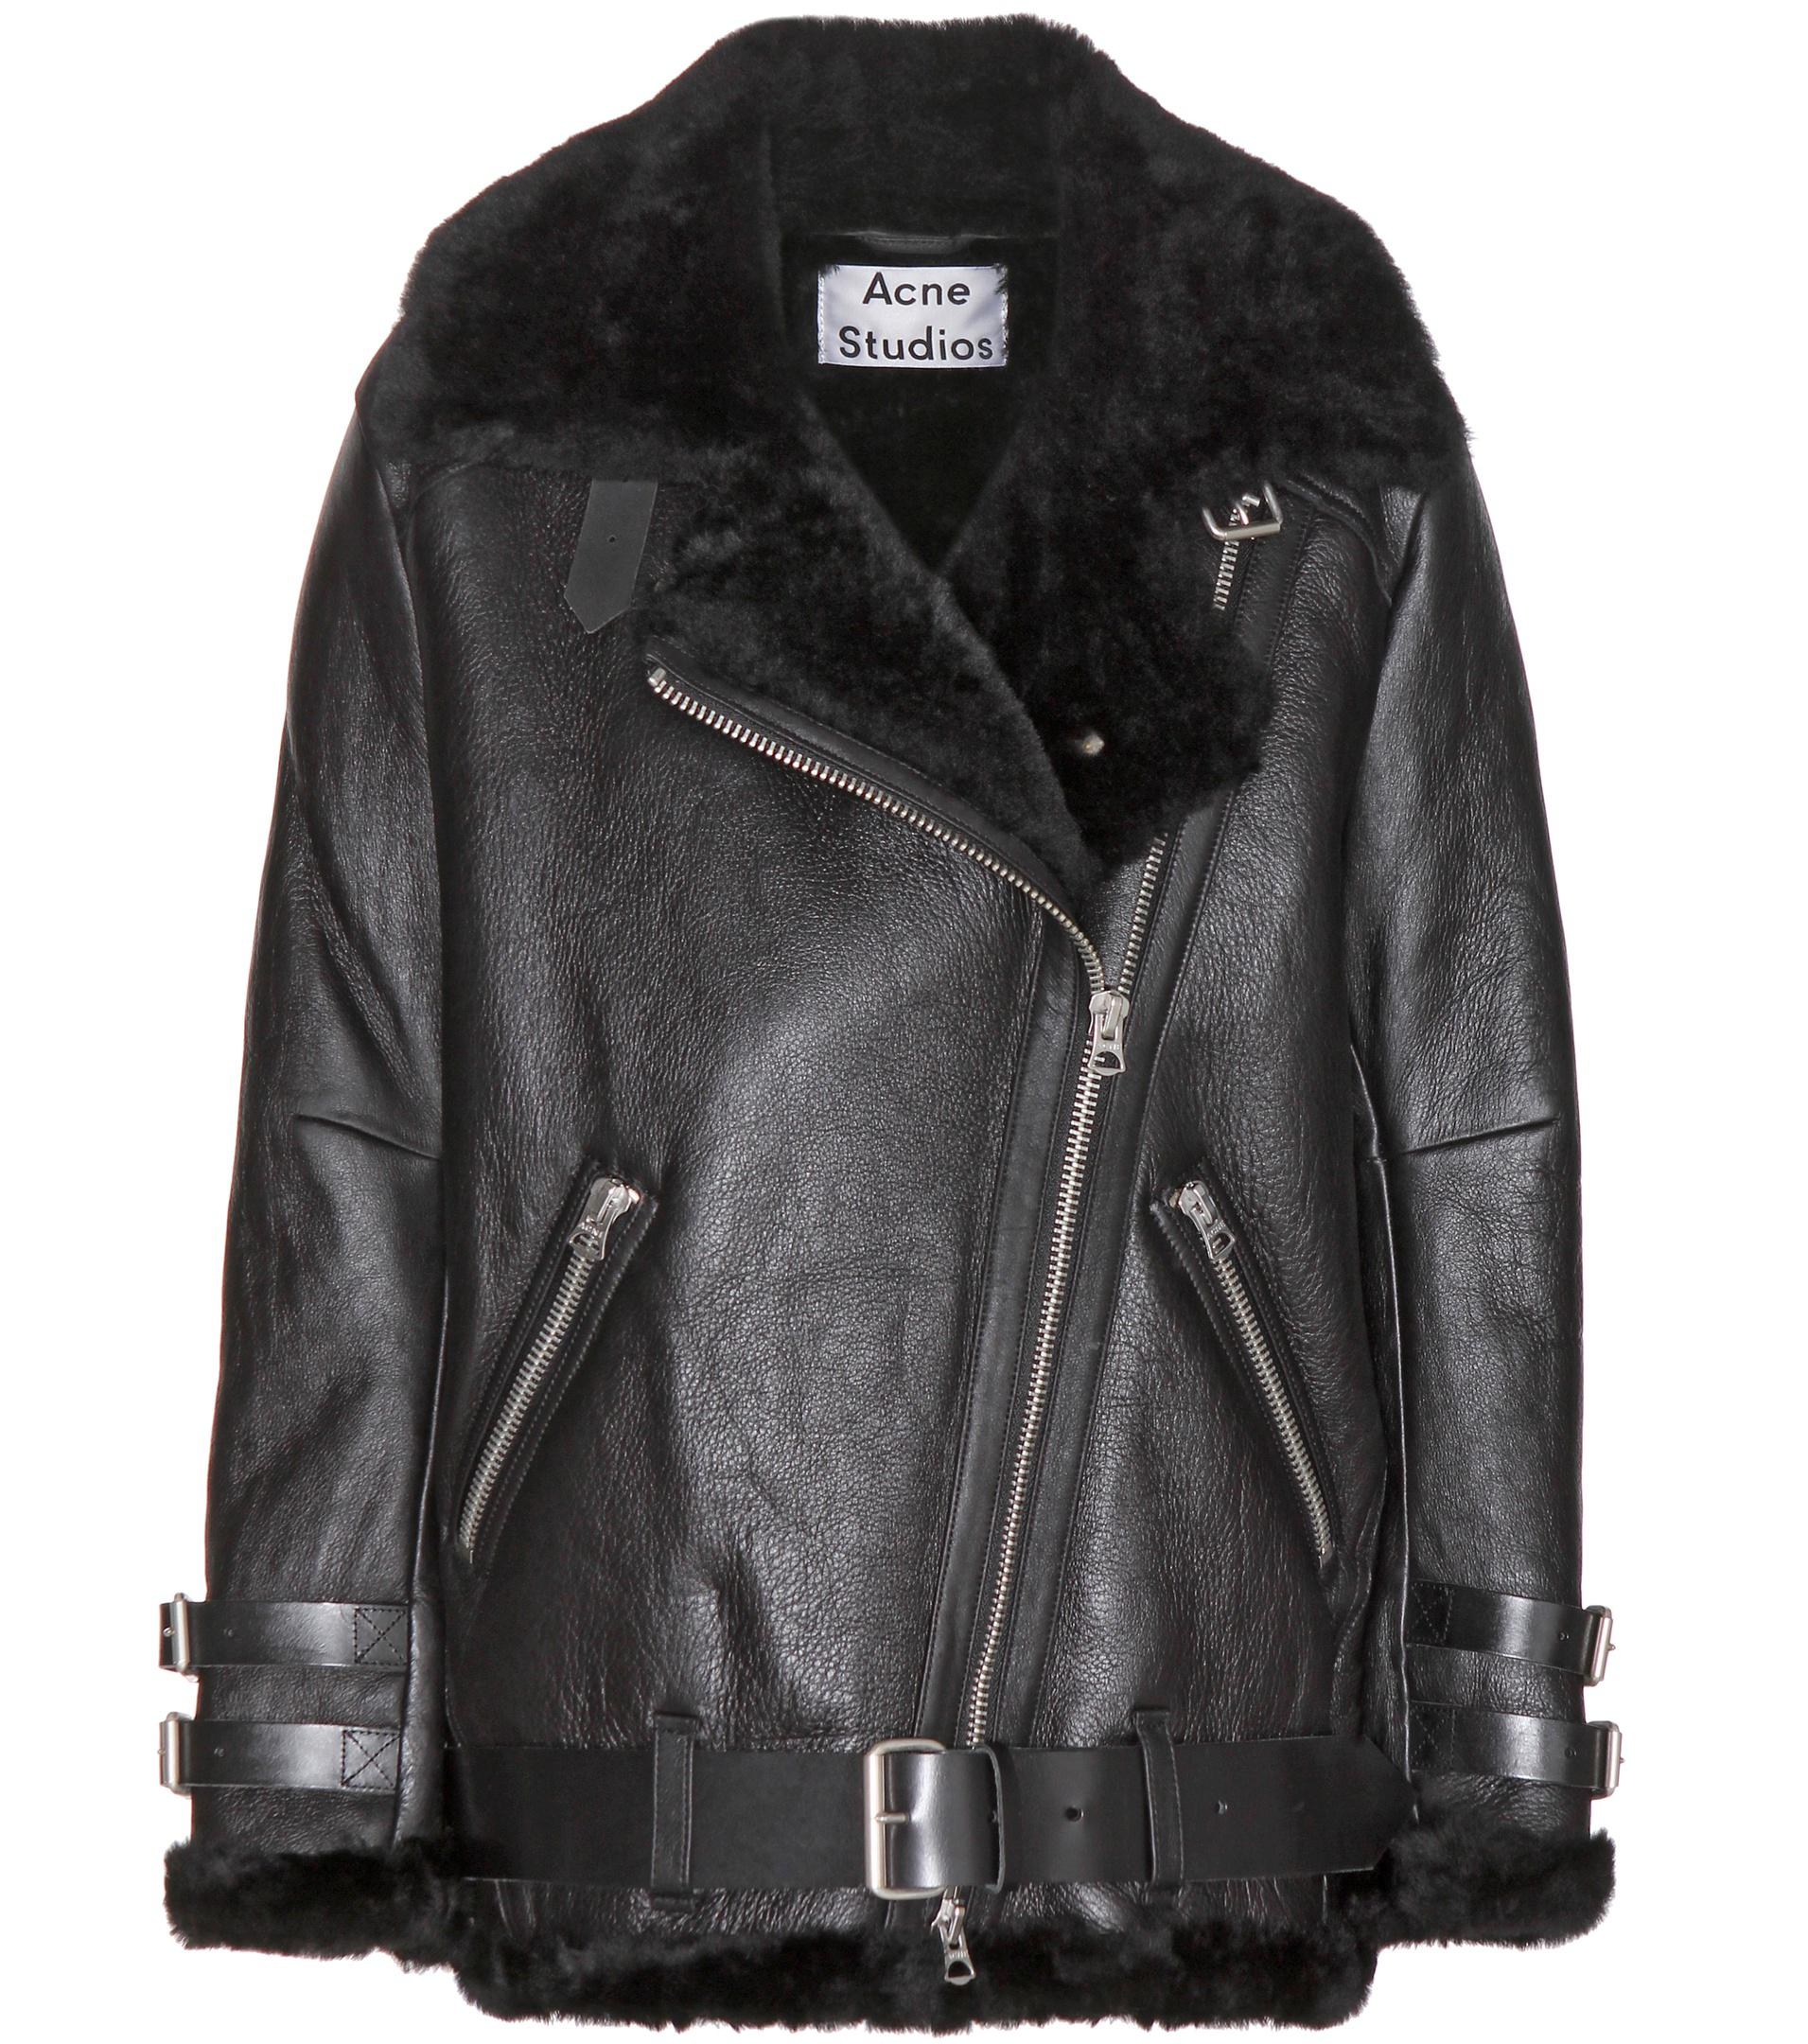 0977eb8326a83 Acne Studios Velocite Shearling-lined Leather Jacket in Black - Lyst